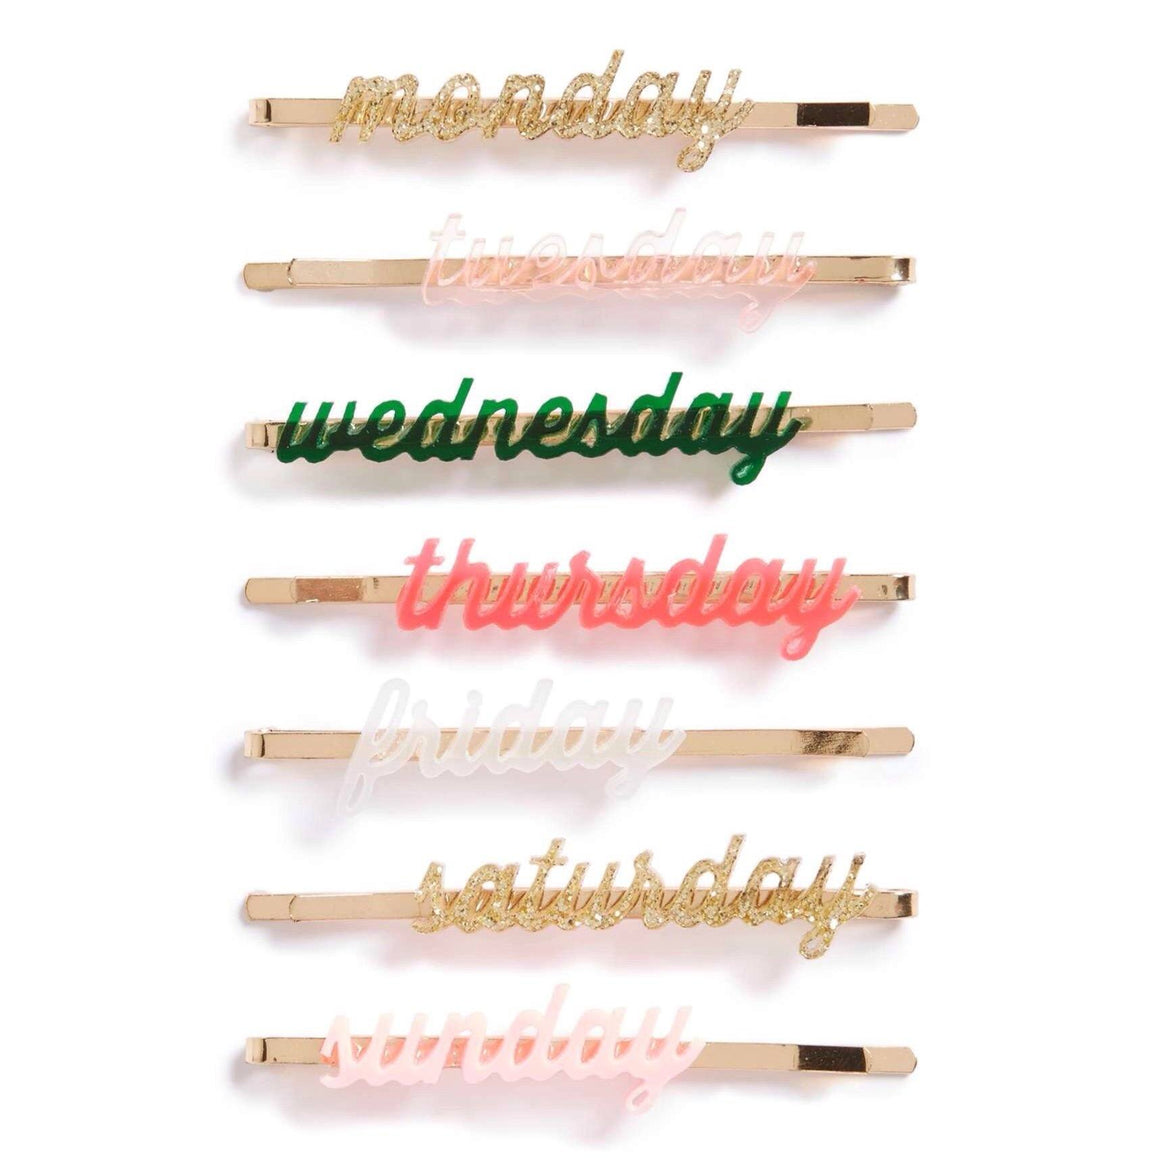 ACCESSORIES - HAIR SLIDES DAYS OF THE WEEK, ACCESSORIES, MERI MERI - Bon + Co. Party Studio